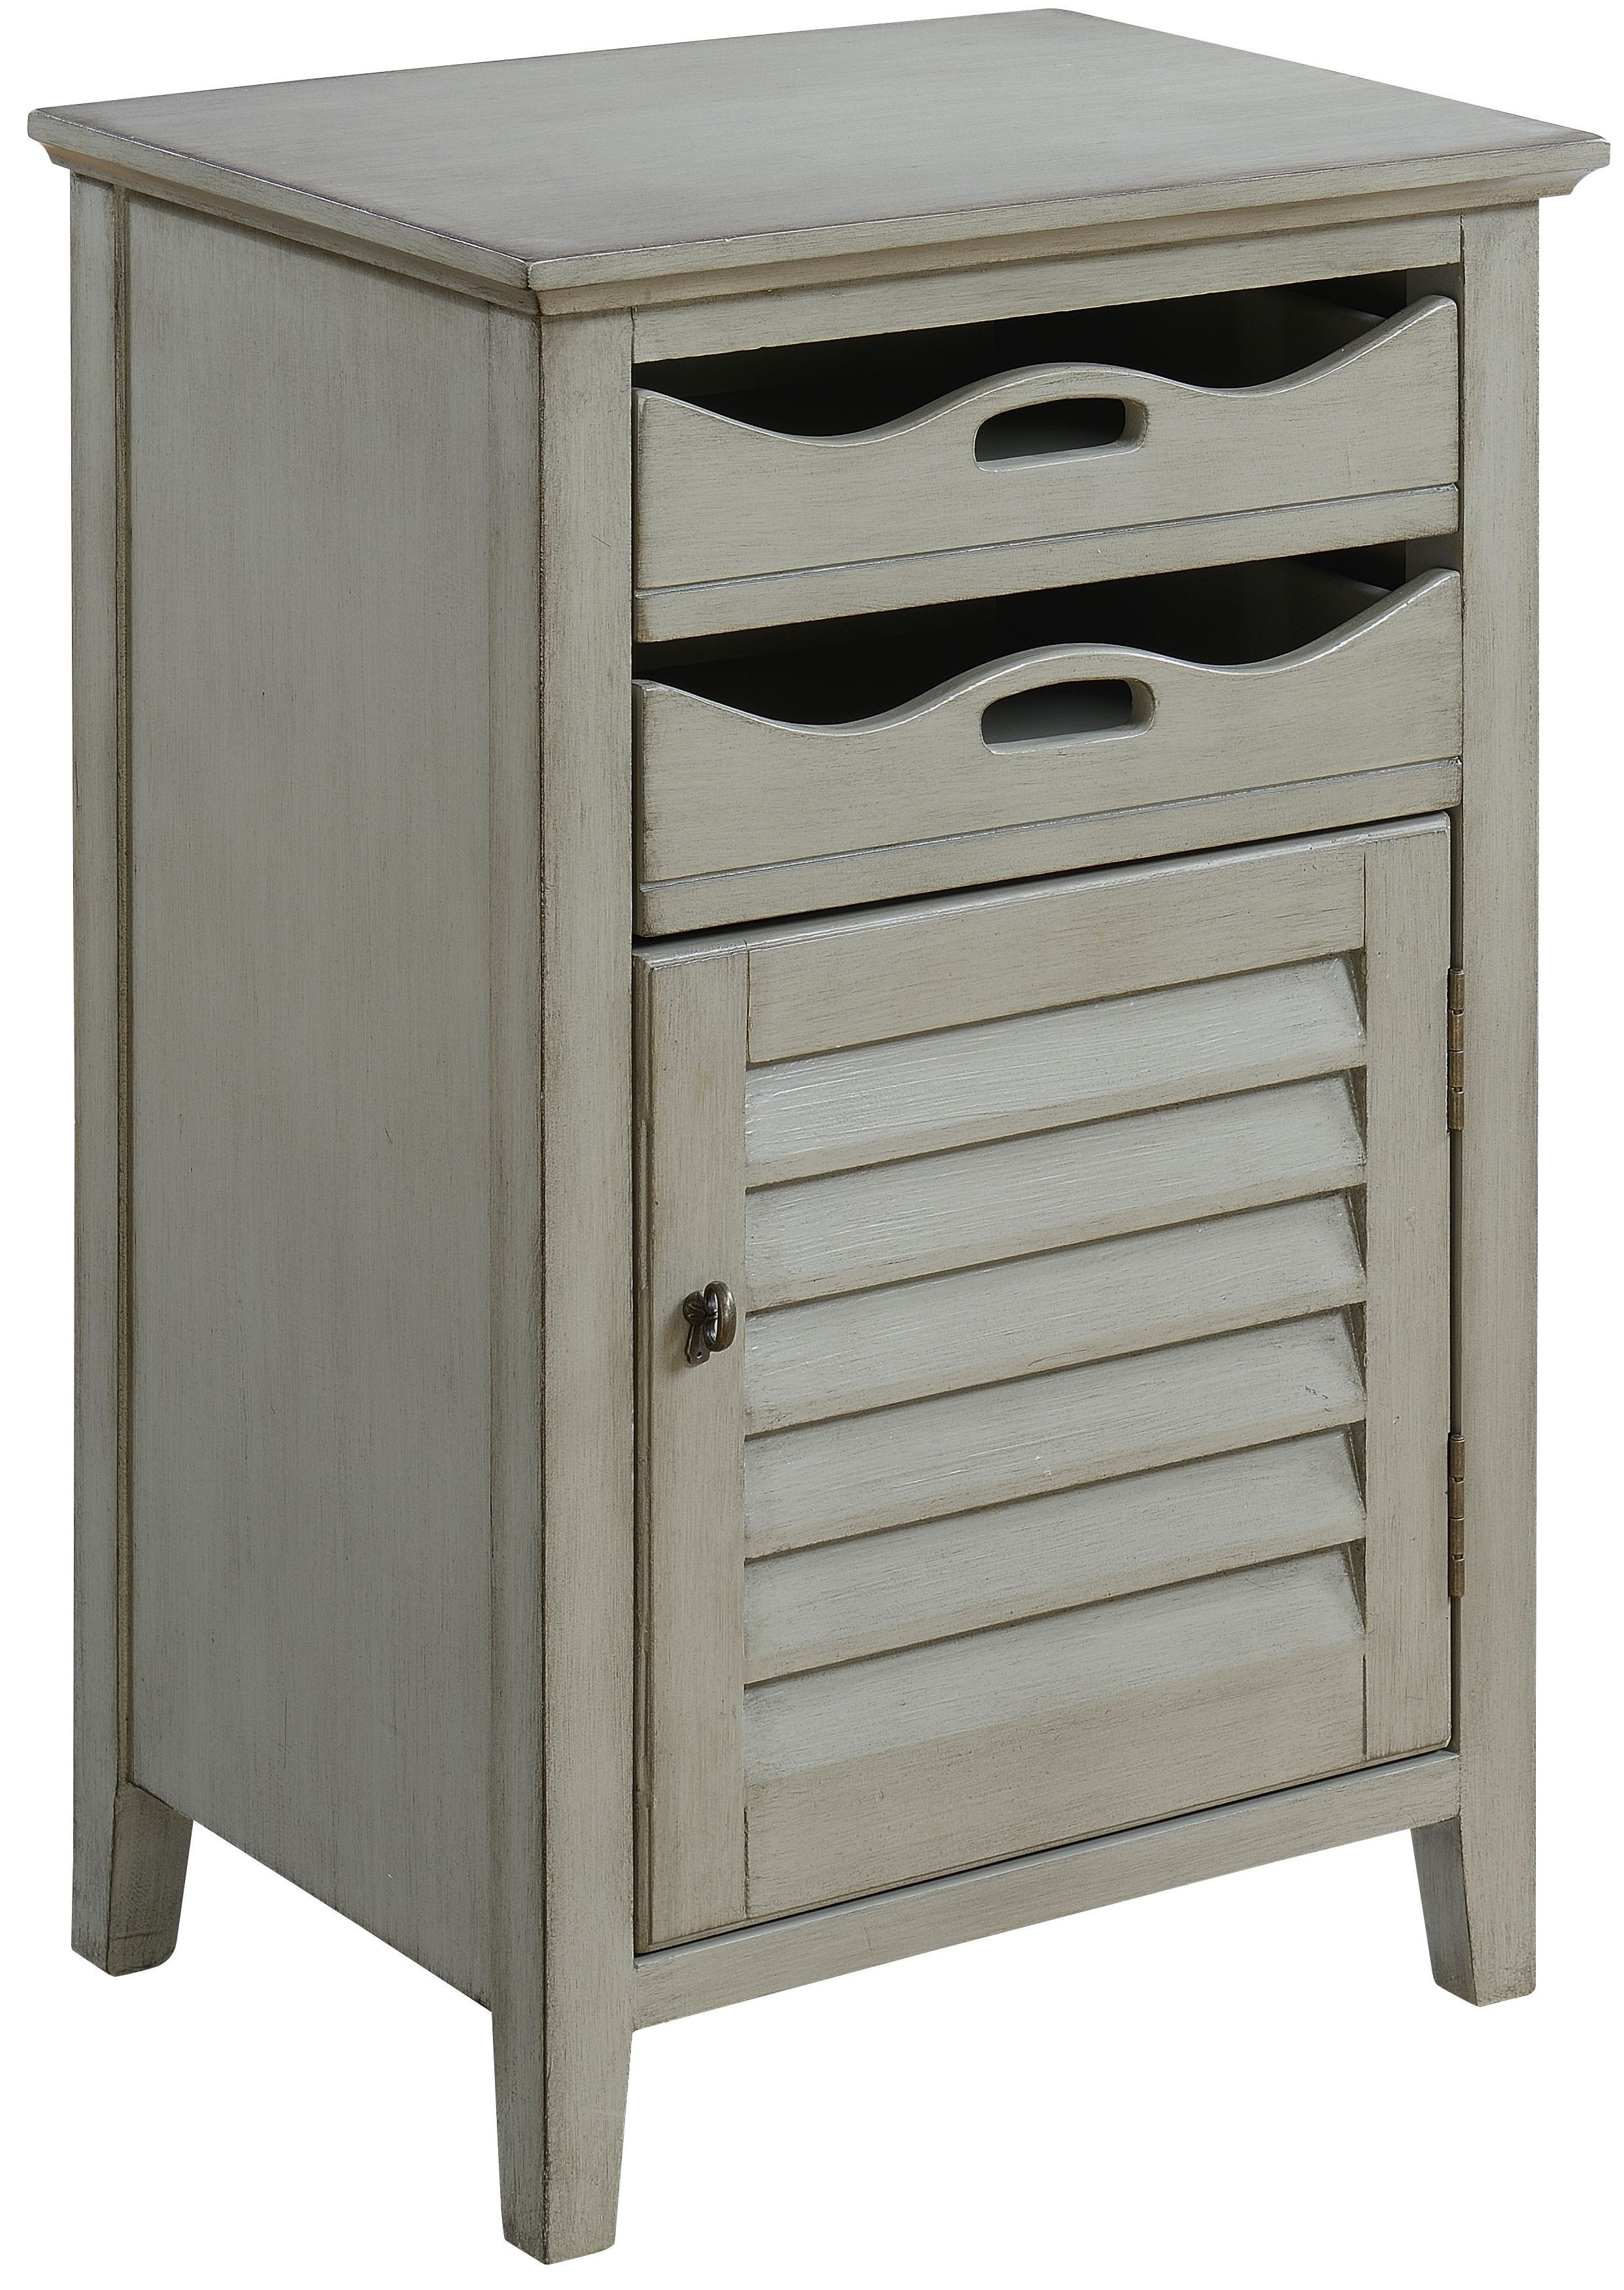 Madrillon Burnished Grey One Door 2 Drawer Cabinet From